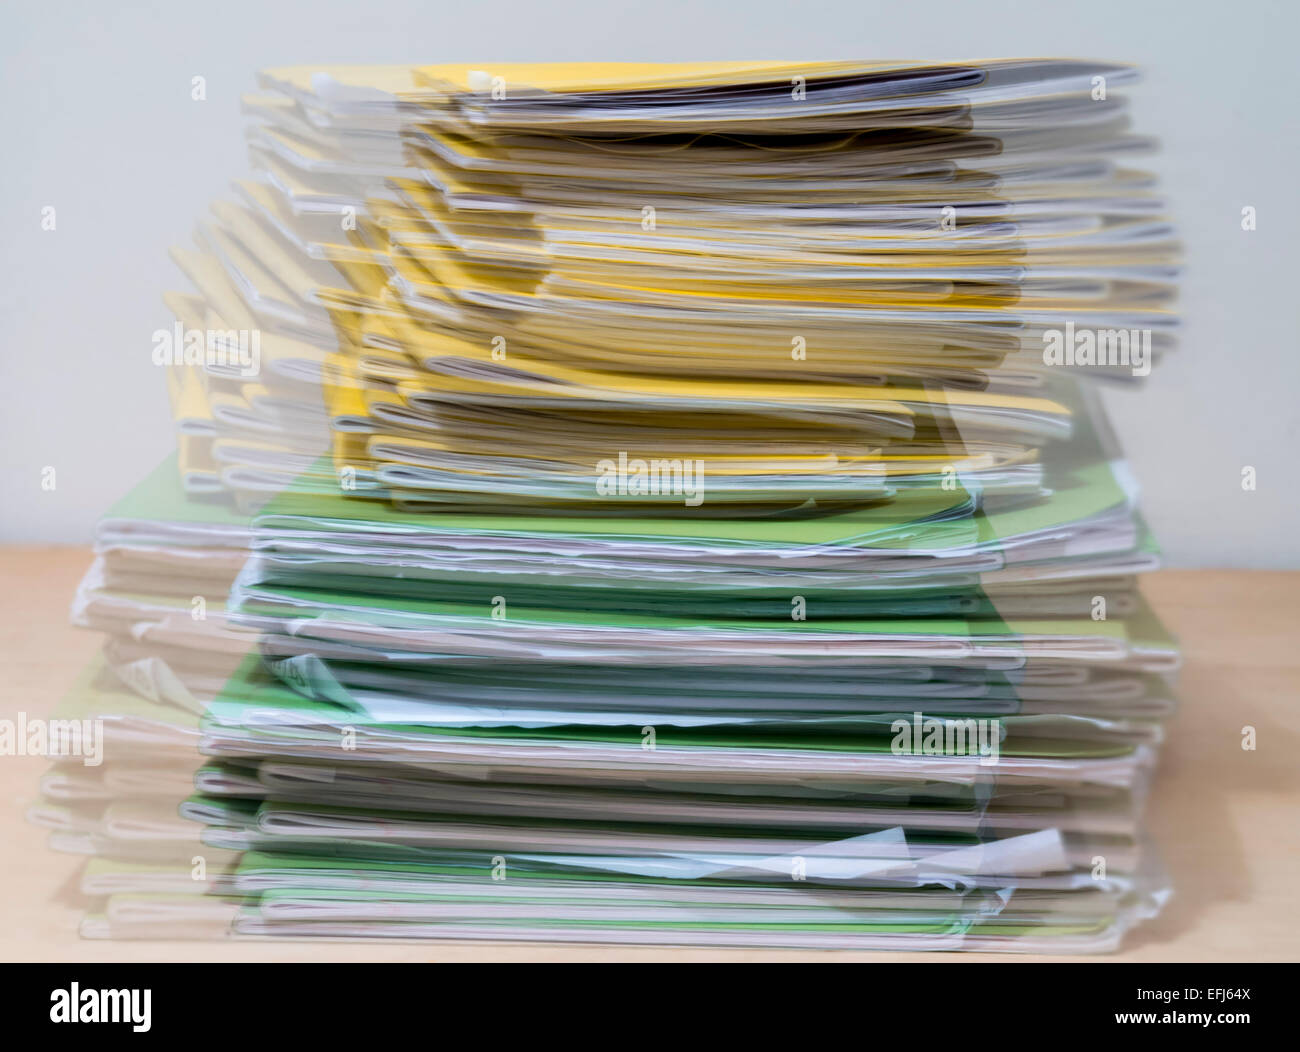 Seeing double/double vision - A large pile of school exercise books for marking by a  teacher - Stock Image